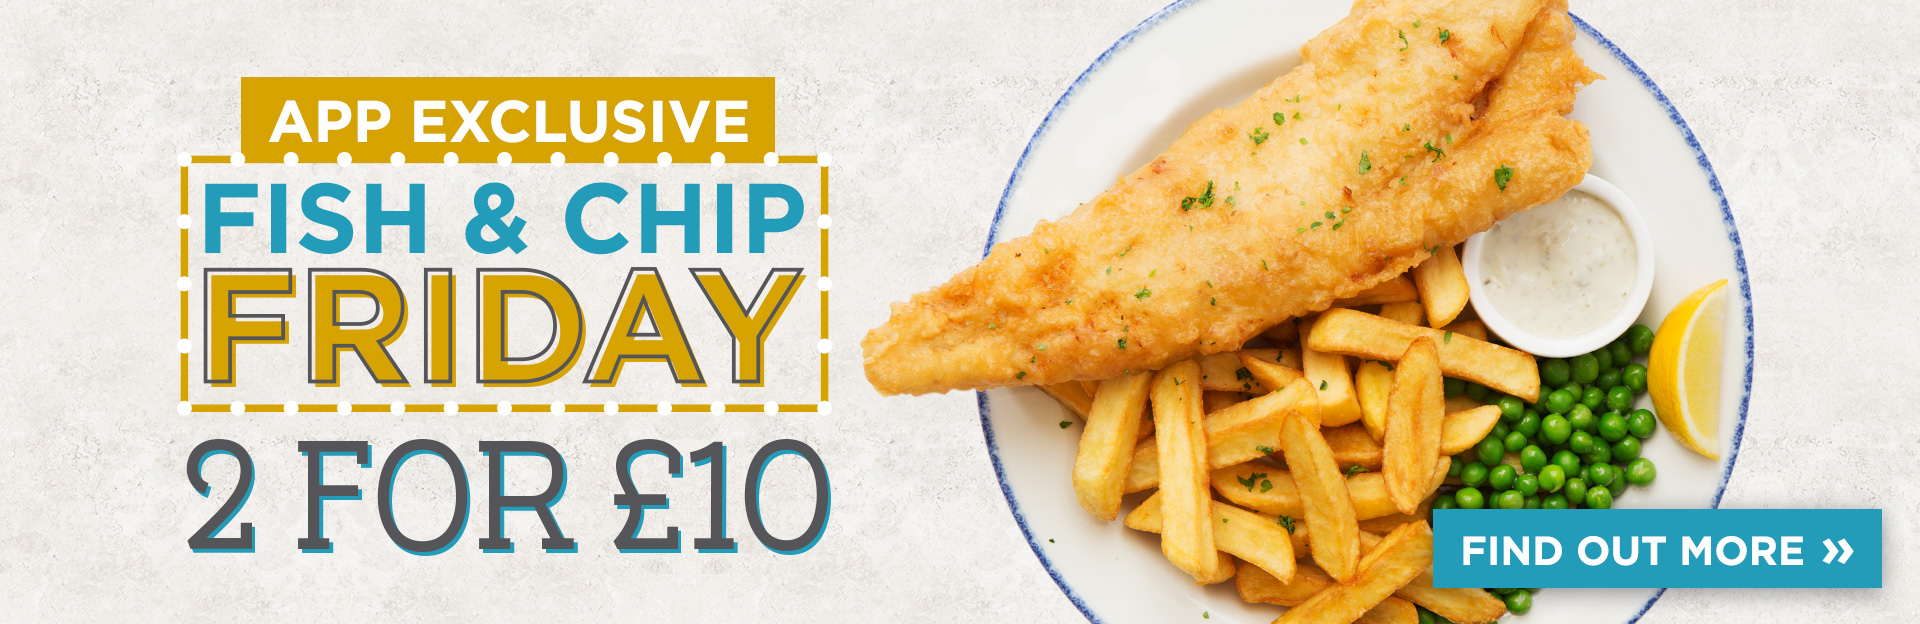 Fish & Chip Friday at The Barley Mow